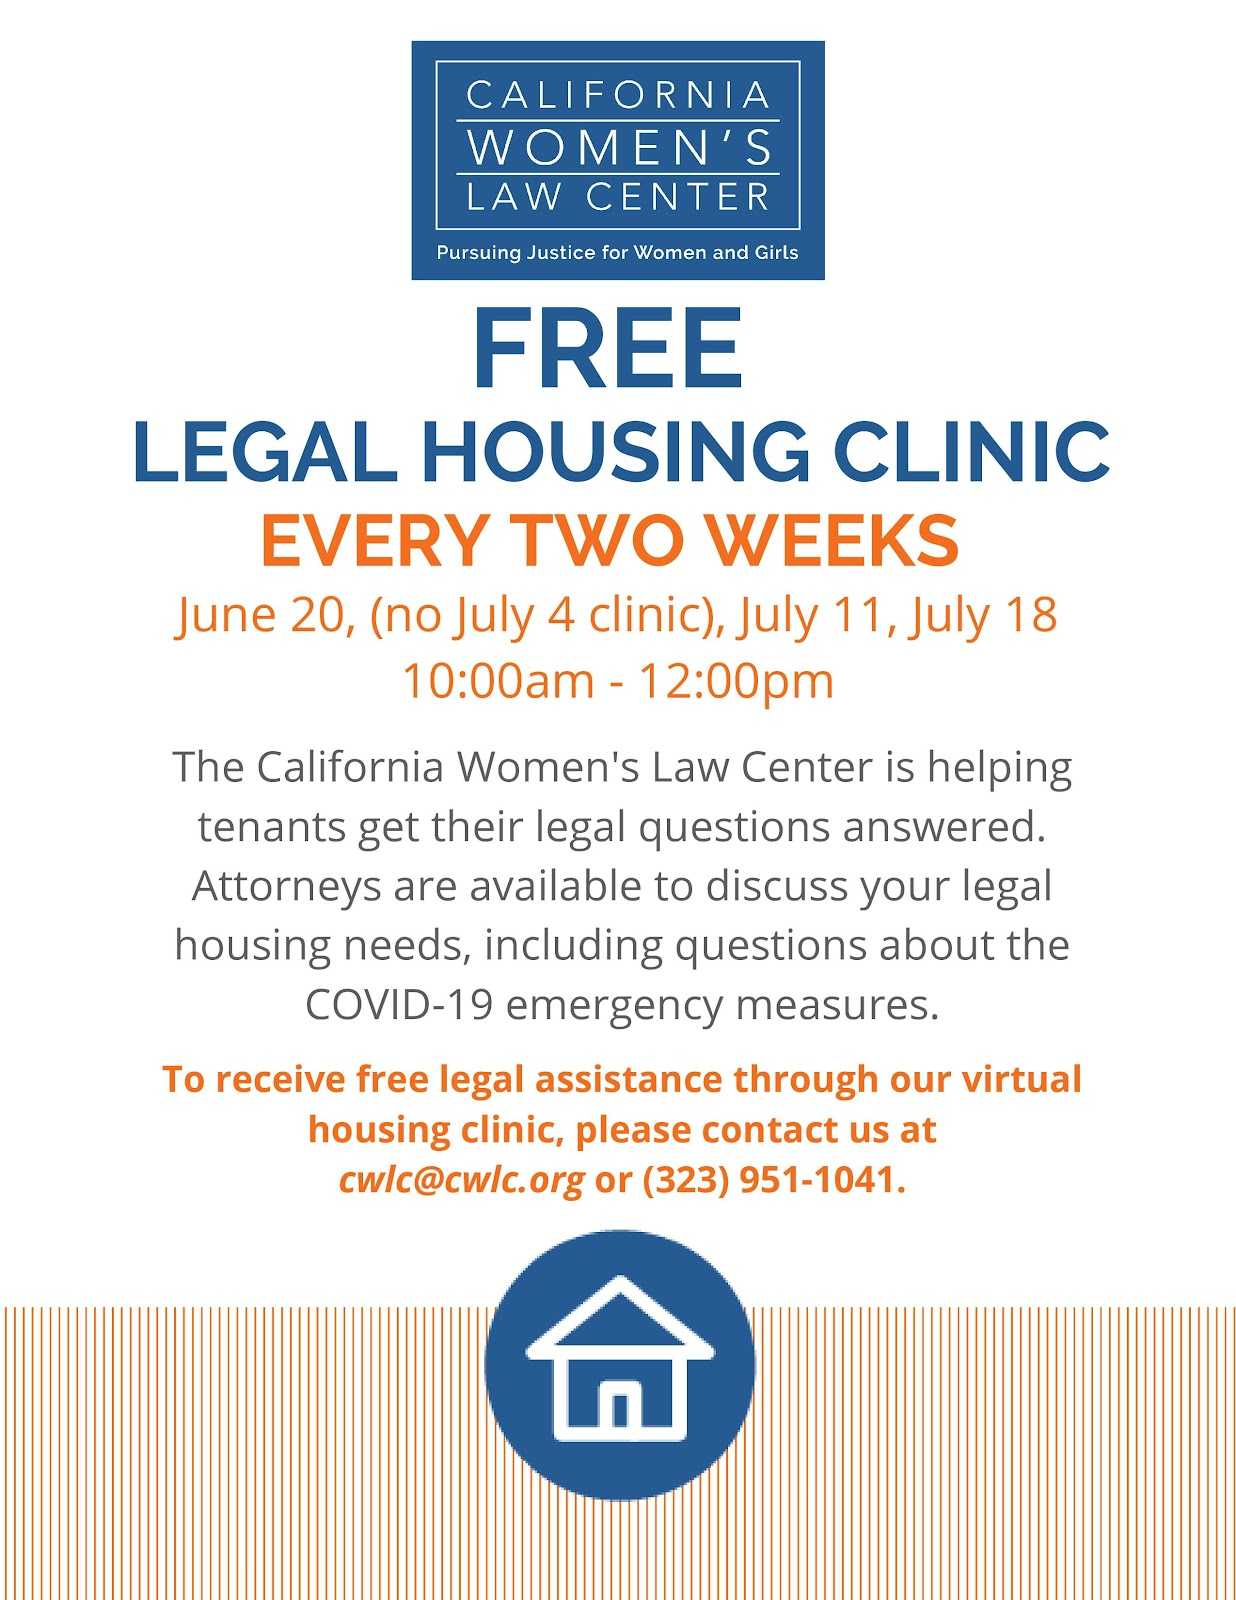 Califonia Women's Law Center Free Legal Housing Clinic